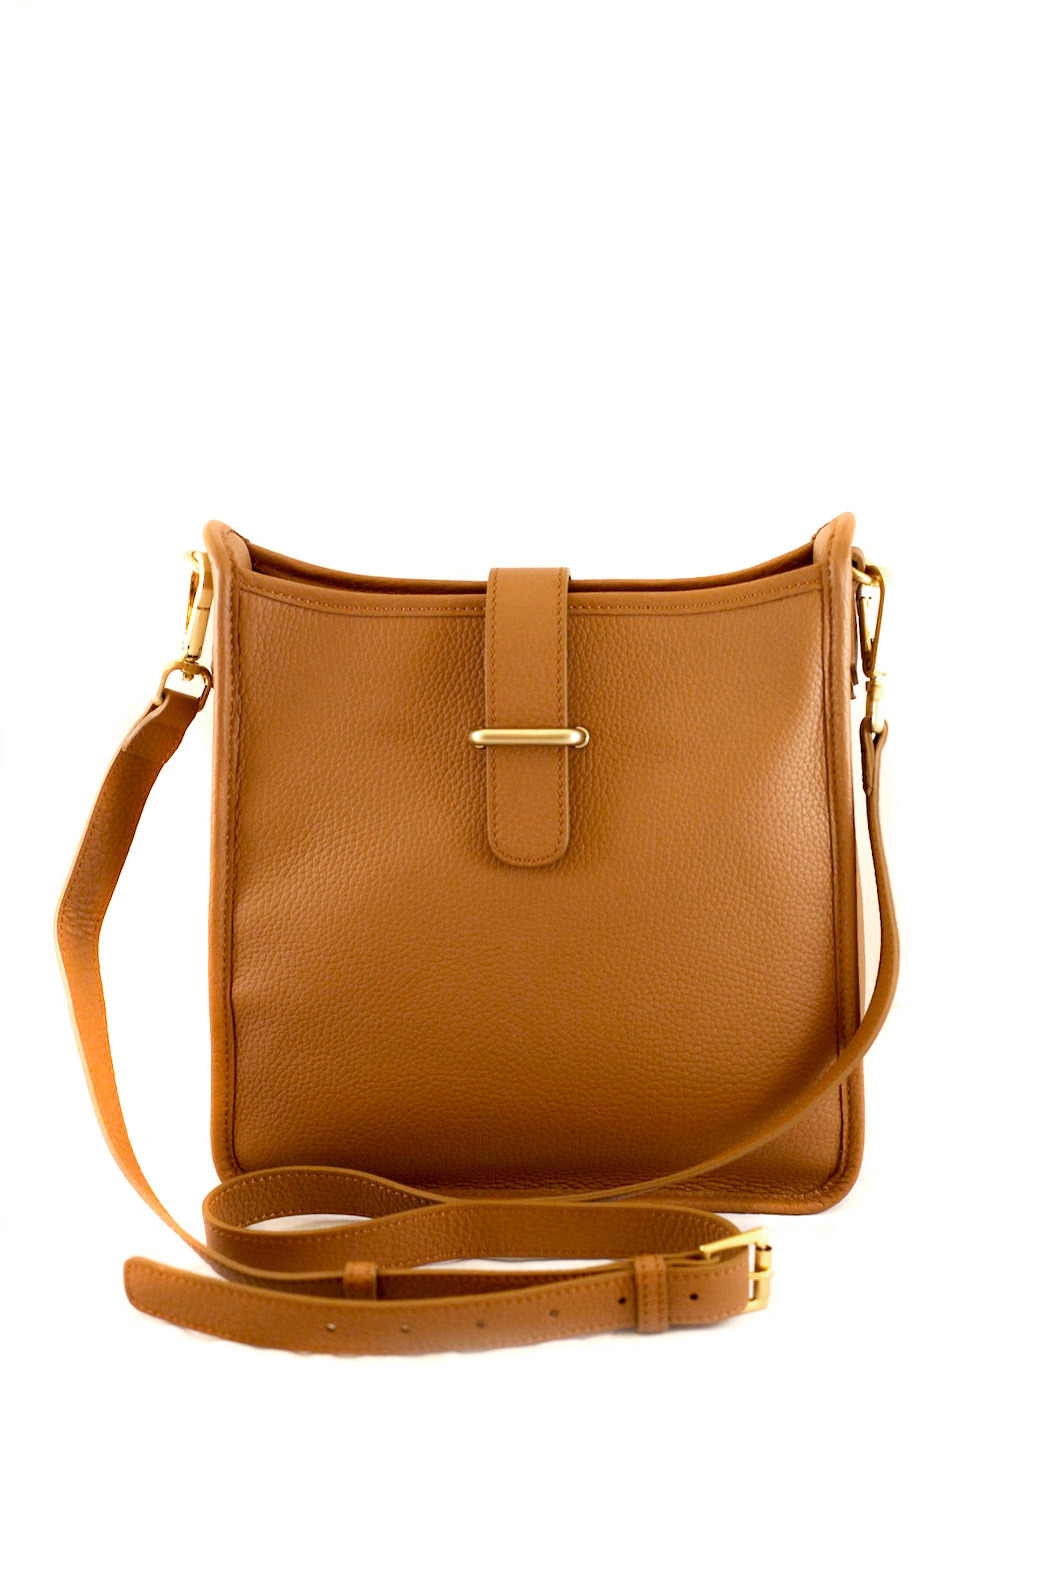 Gigi New York Elle Cross-body - Front Cropped Image